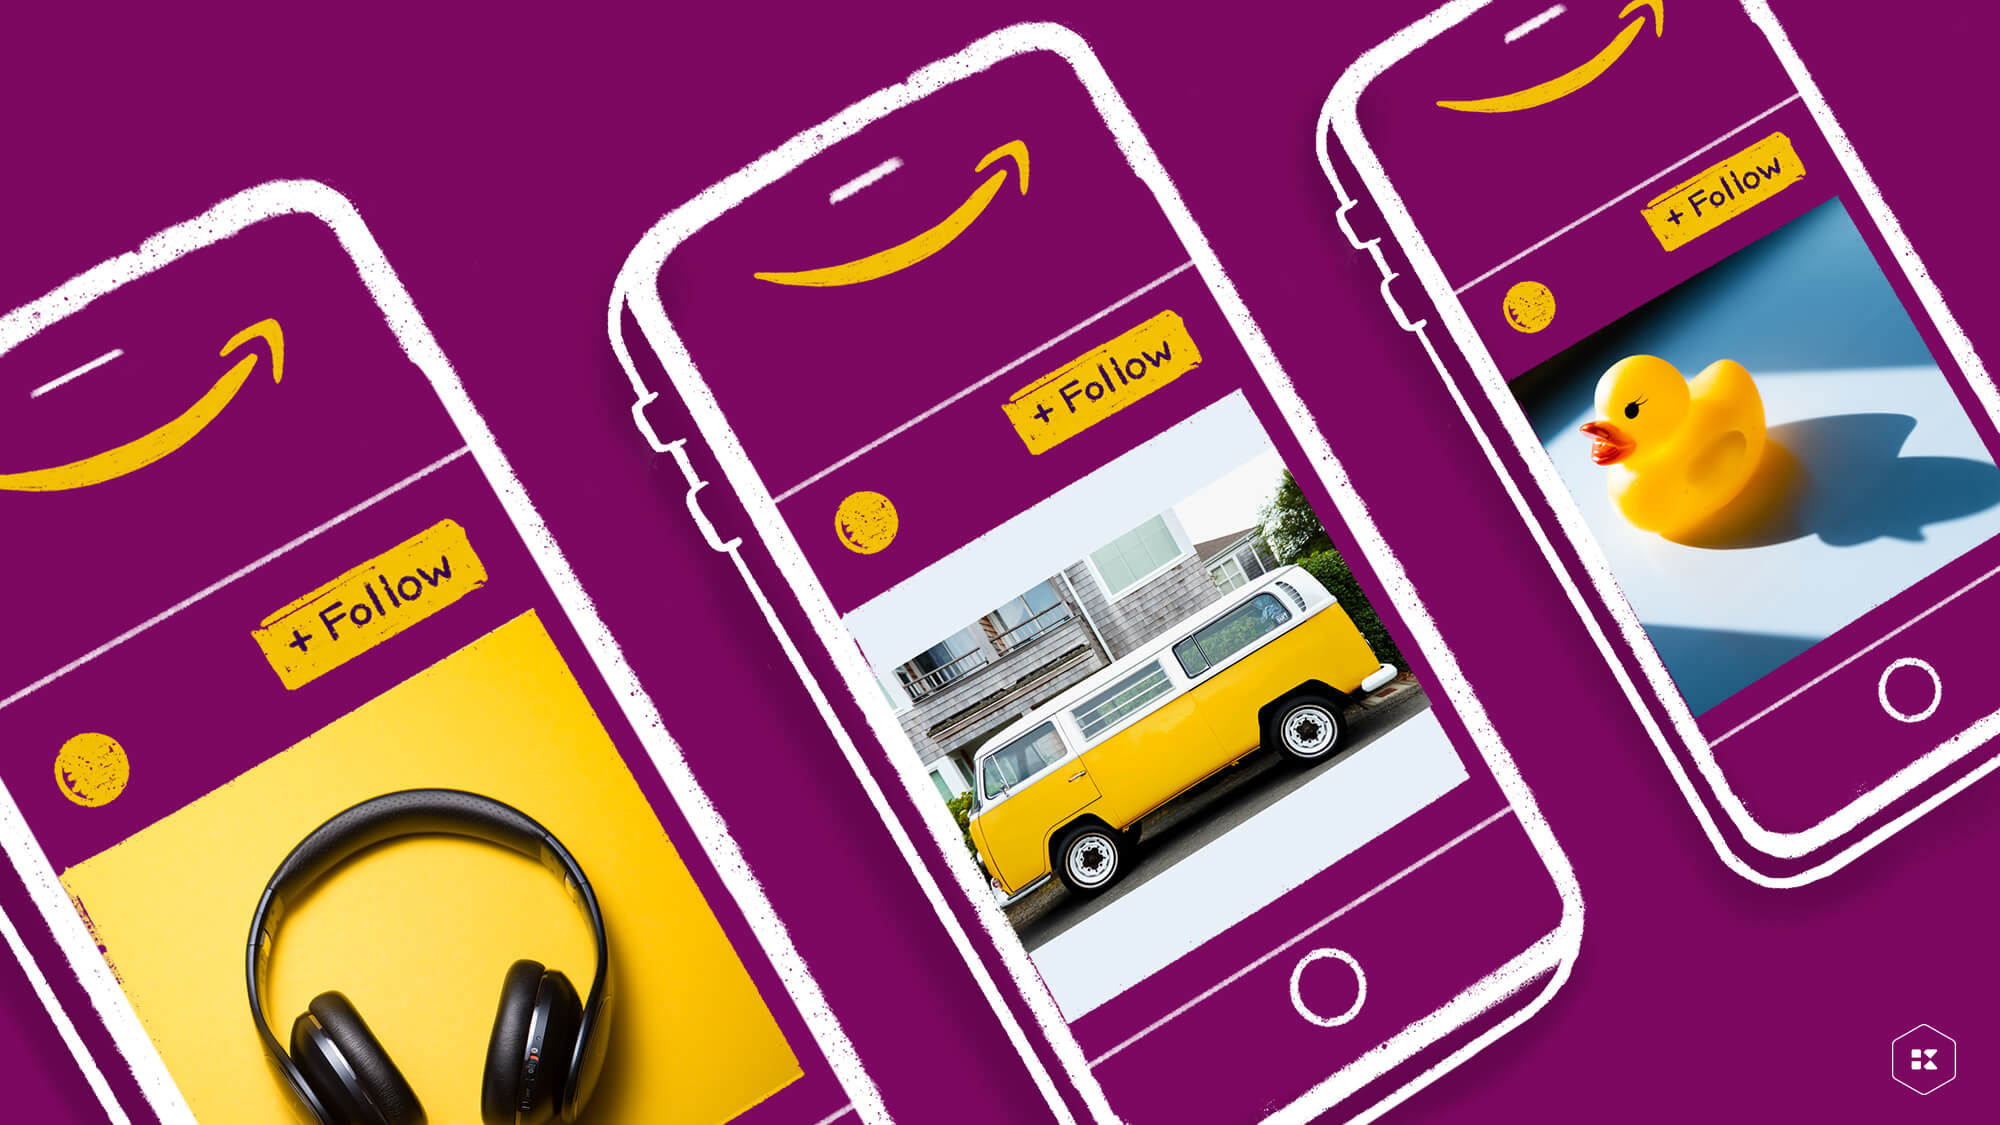 Example images of Amazon Posts in a mobile phone